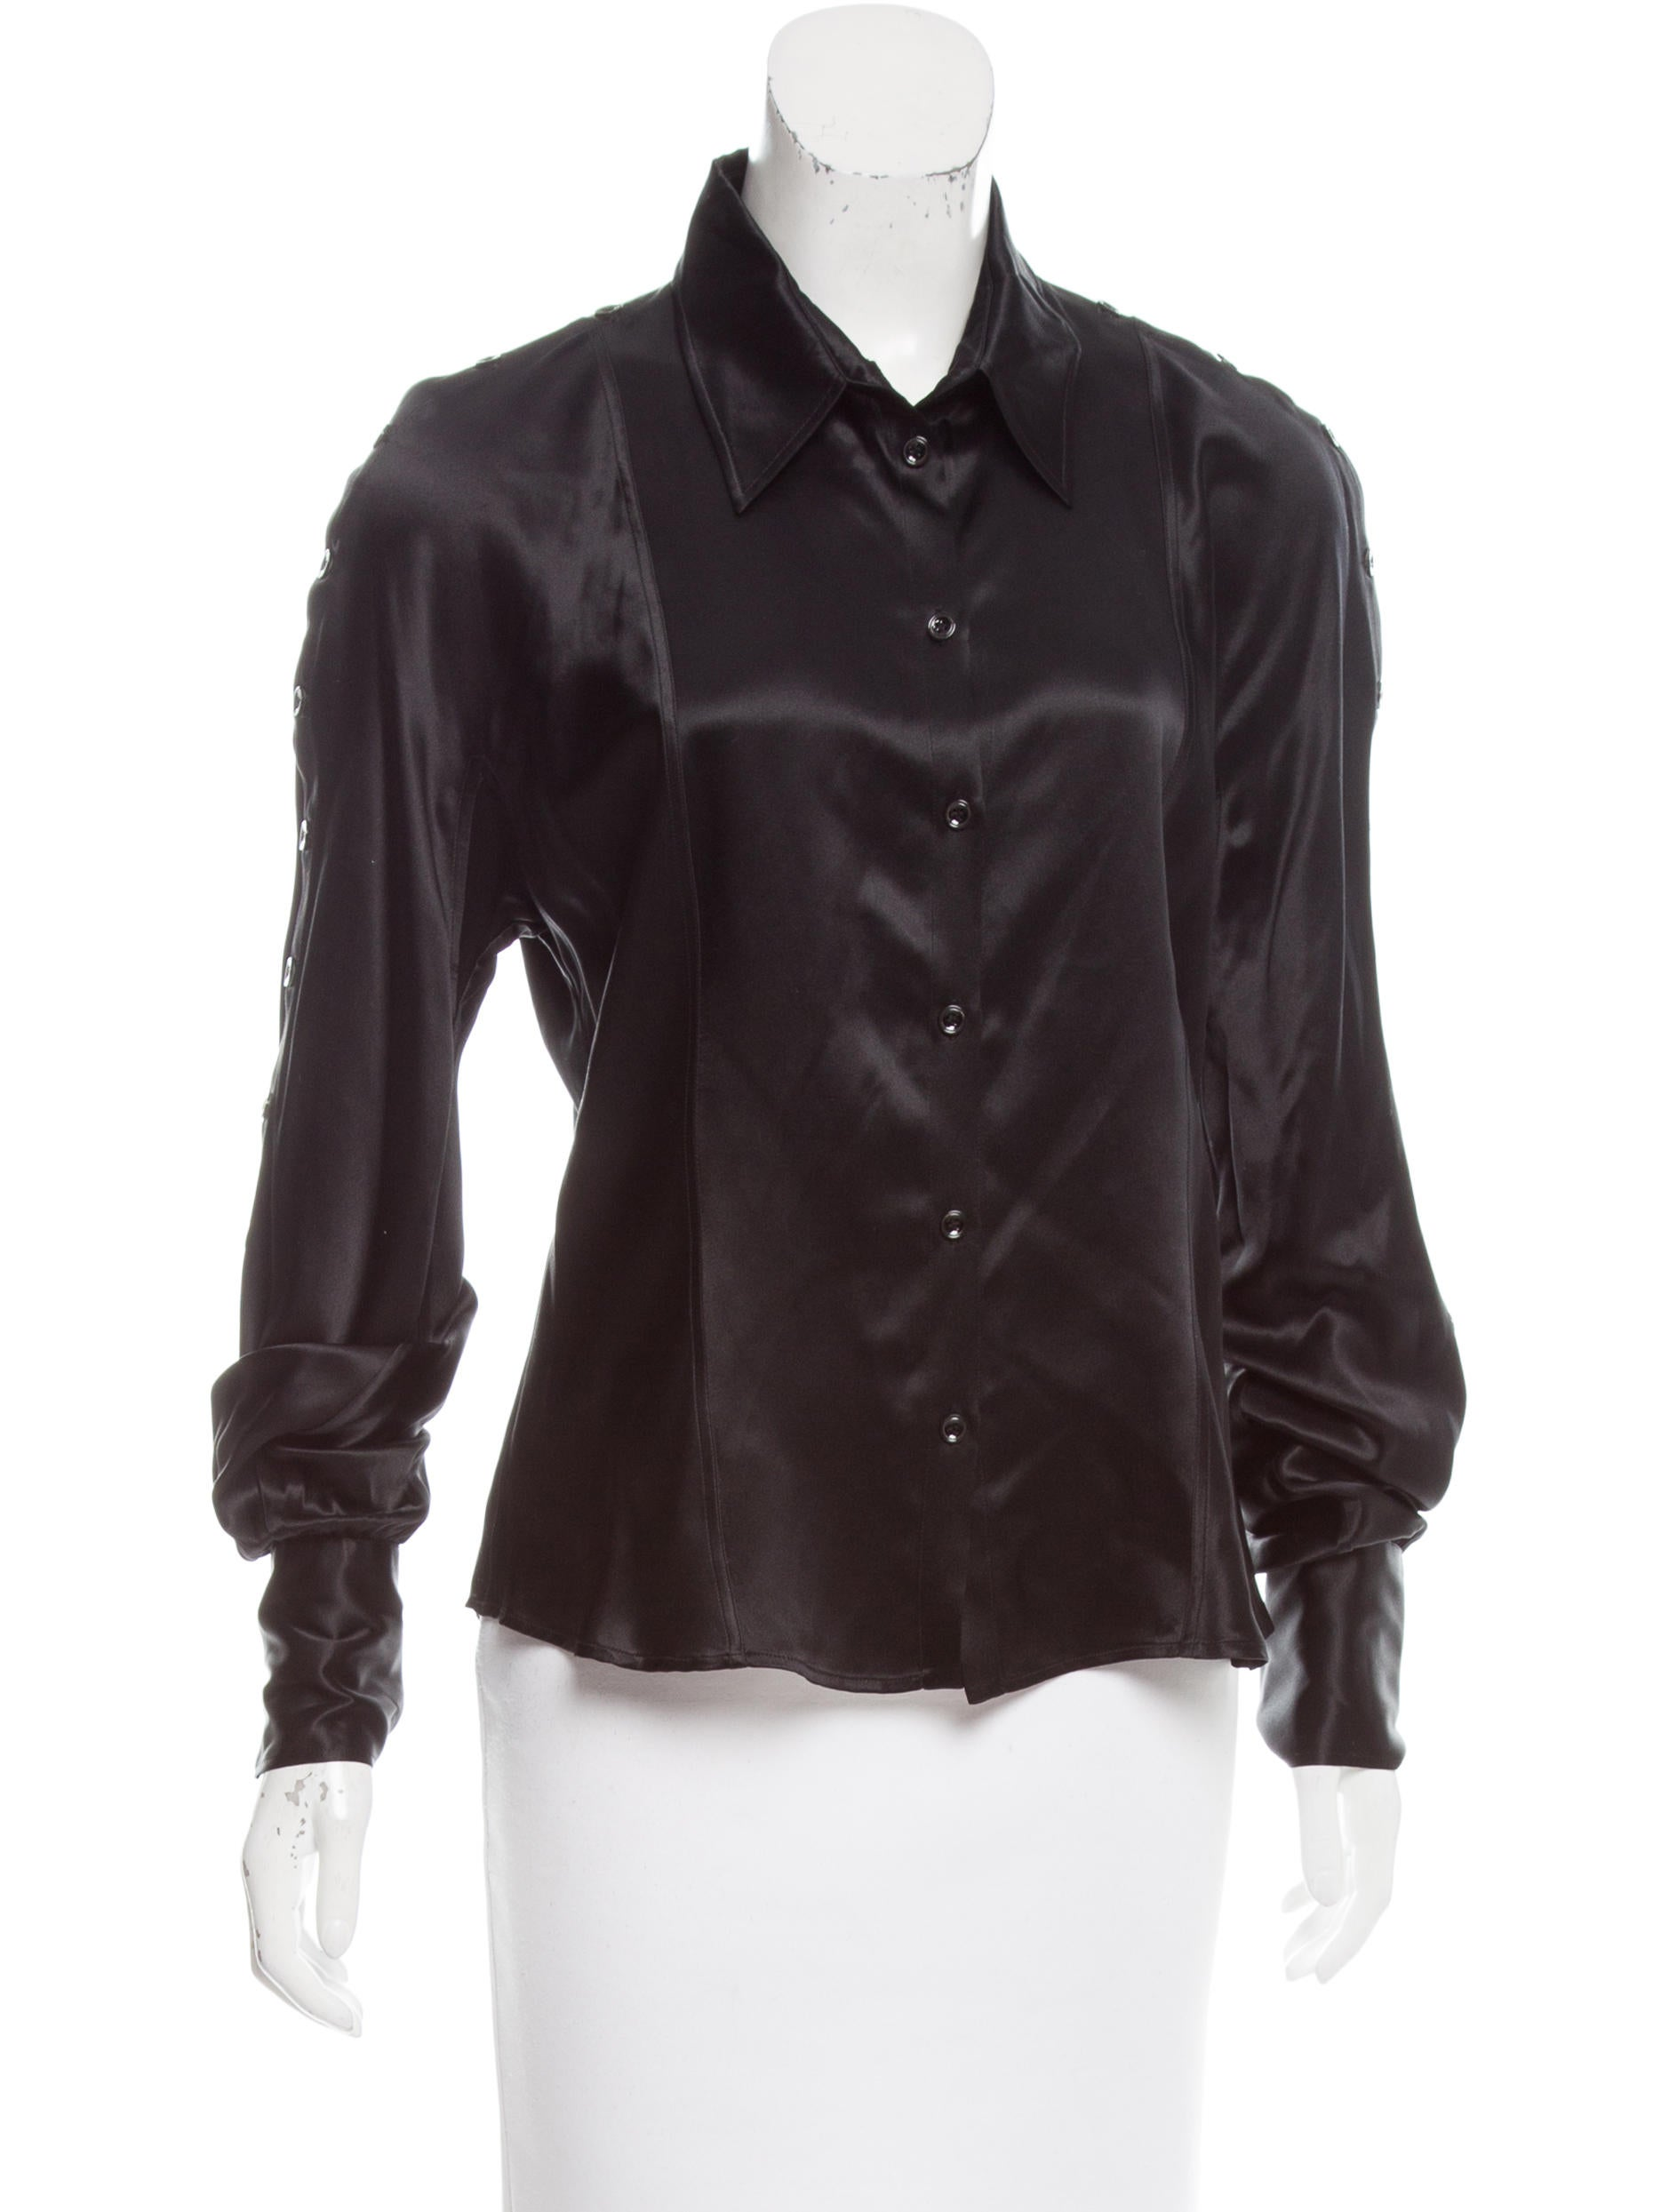 Christian dior silk button up top clothing chr61205 for Christian dior button up shirt